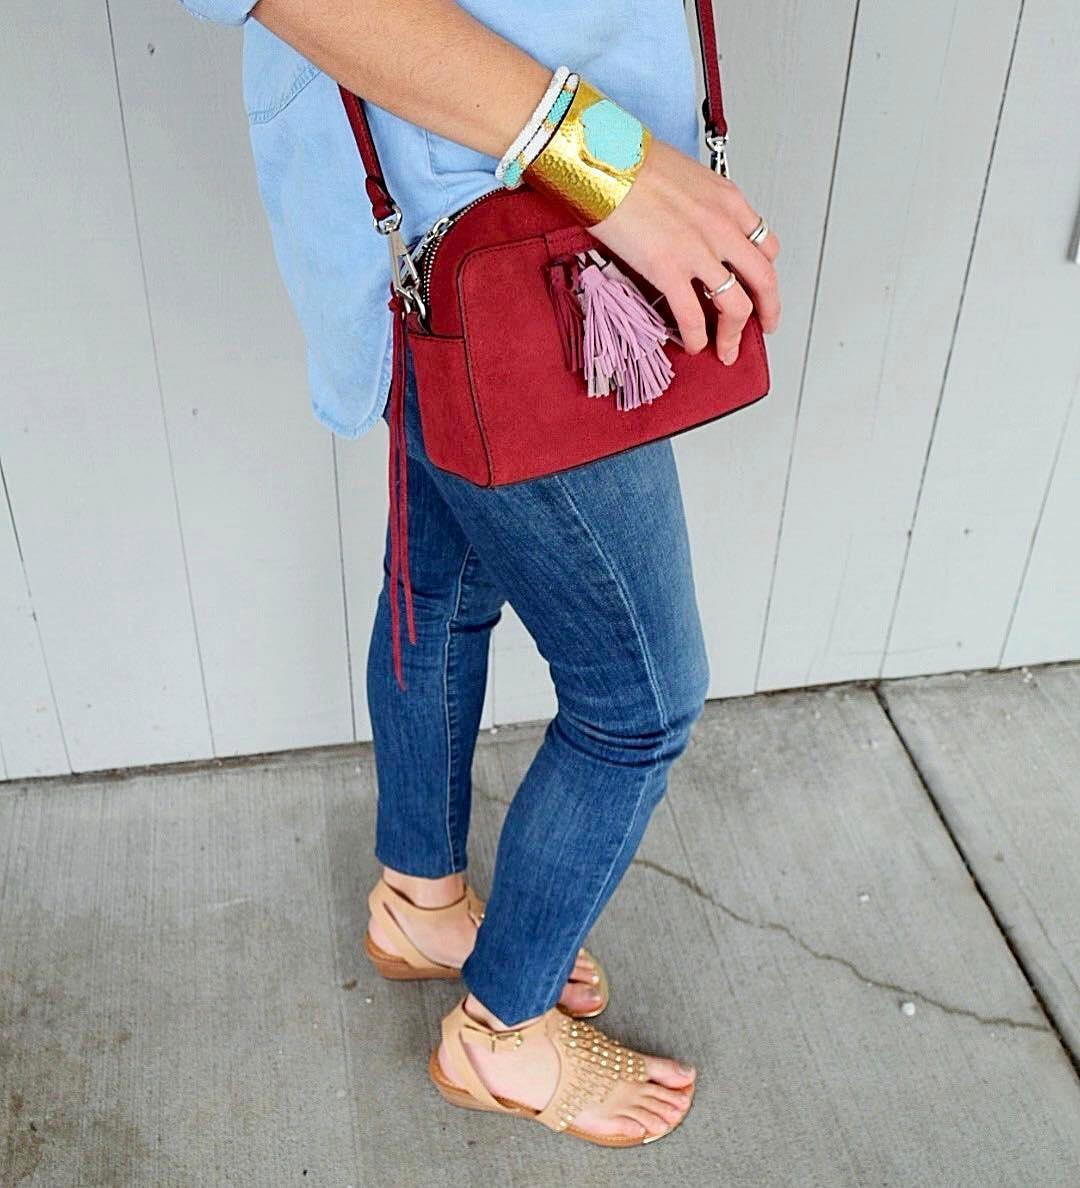 40 Wear Stylish Summer Flat Sandals For A New Look